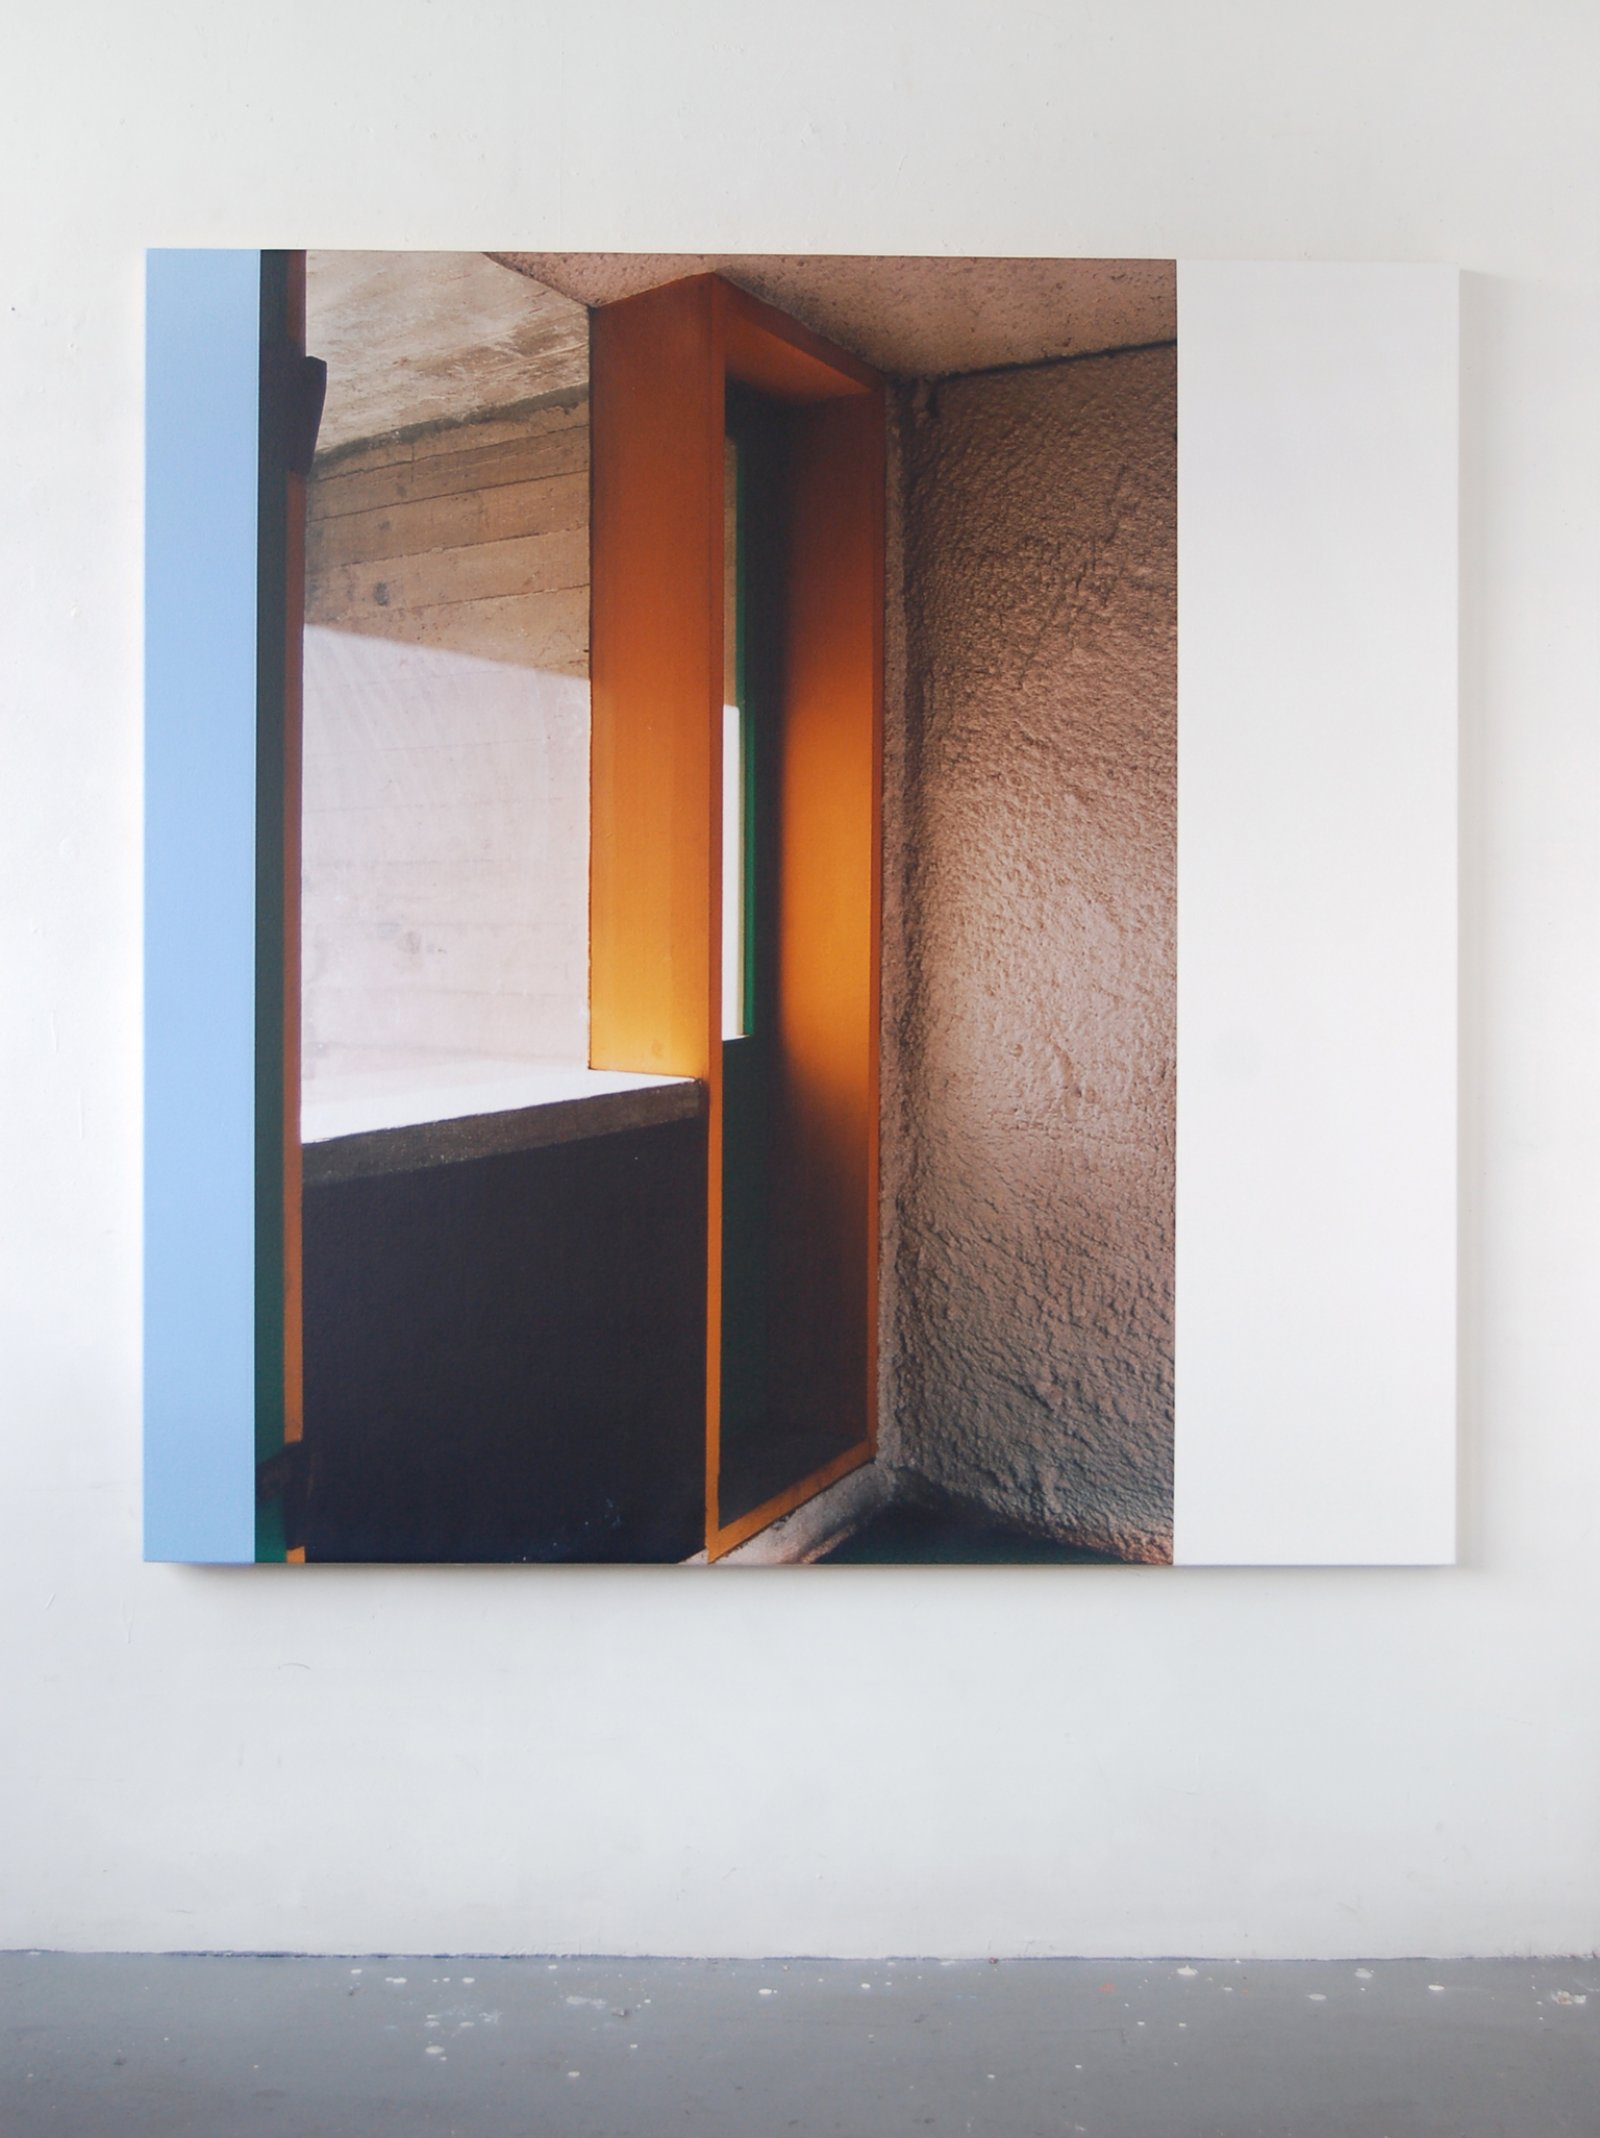 Ian Wallace,La Tourette (A Space for Waiting), 2006, photolaminate and acrylic on canvas, 60 x 60 in. (152 x 152 cm)